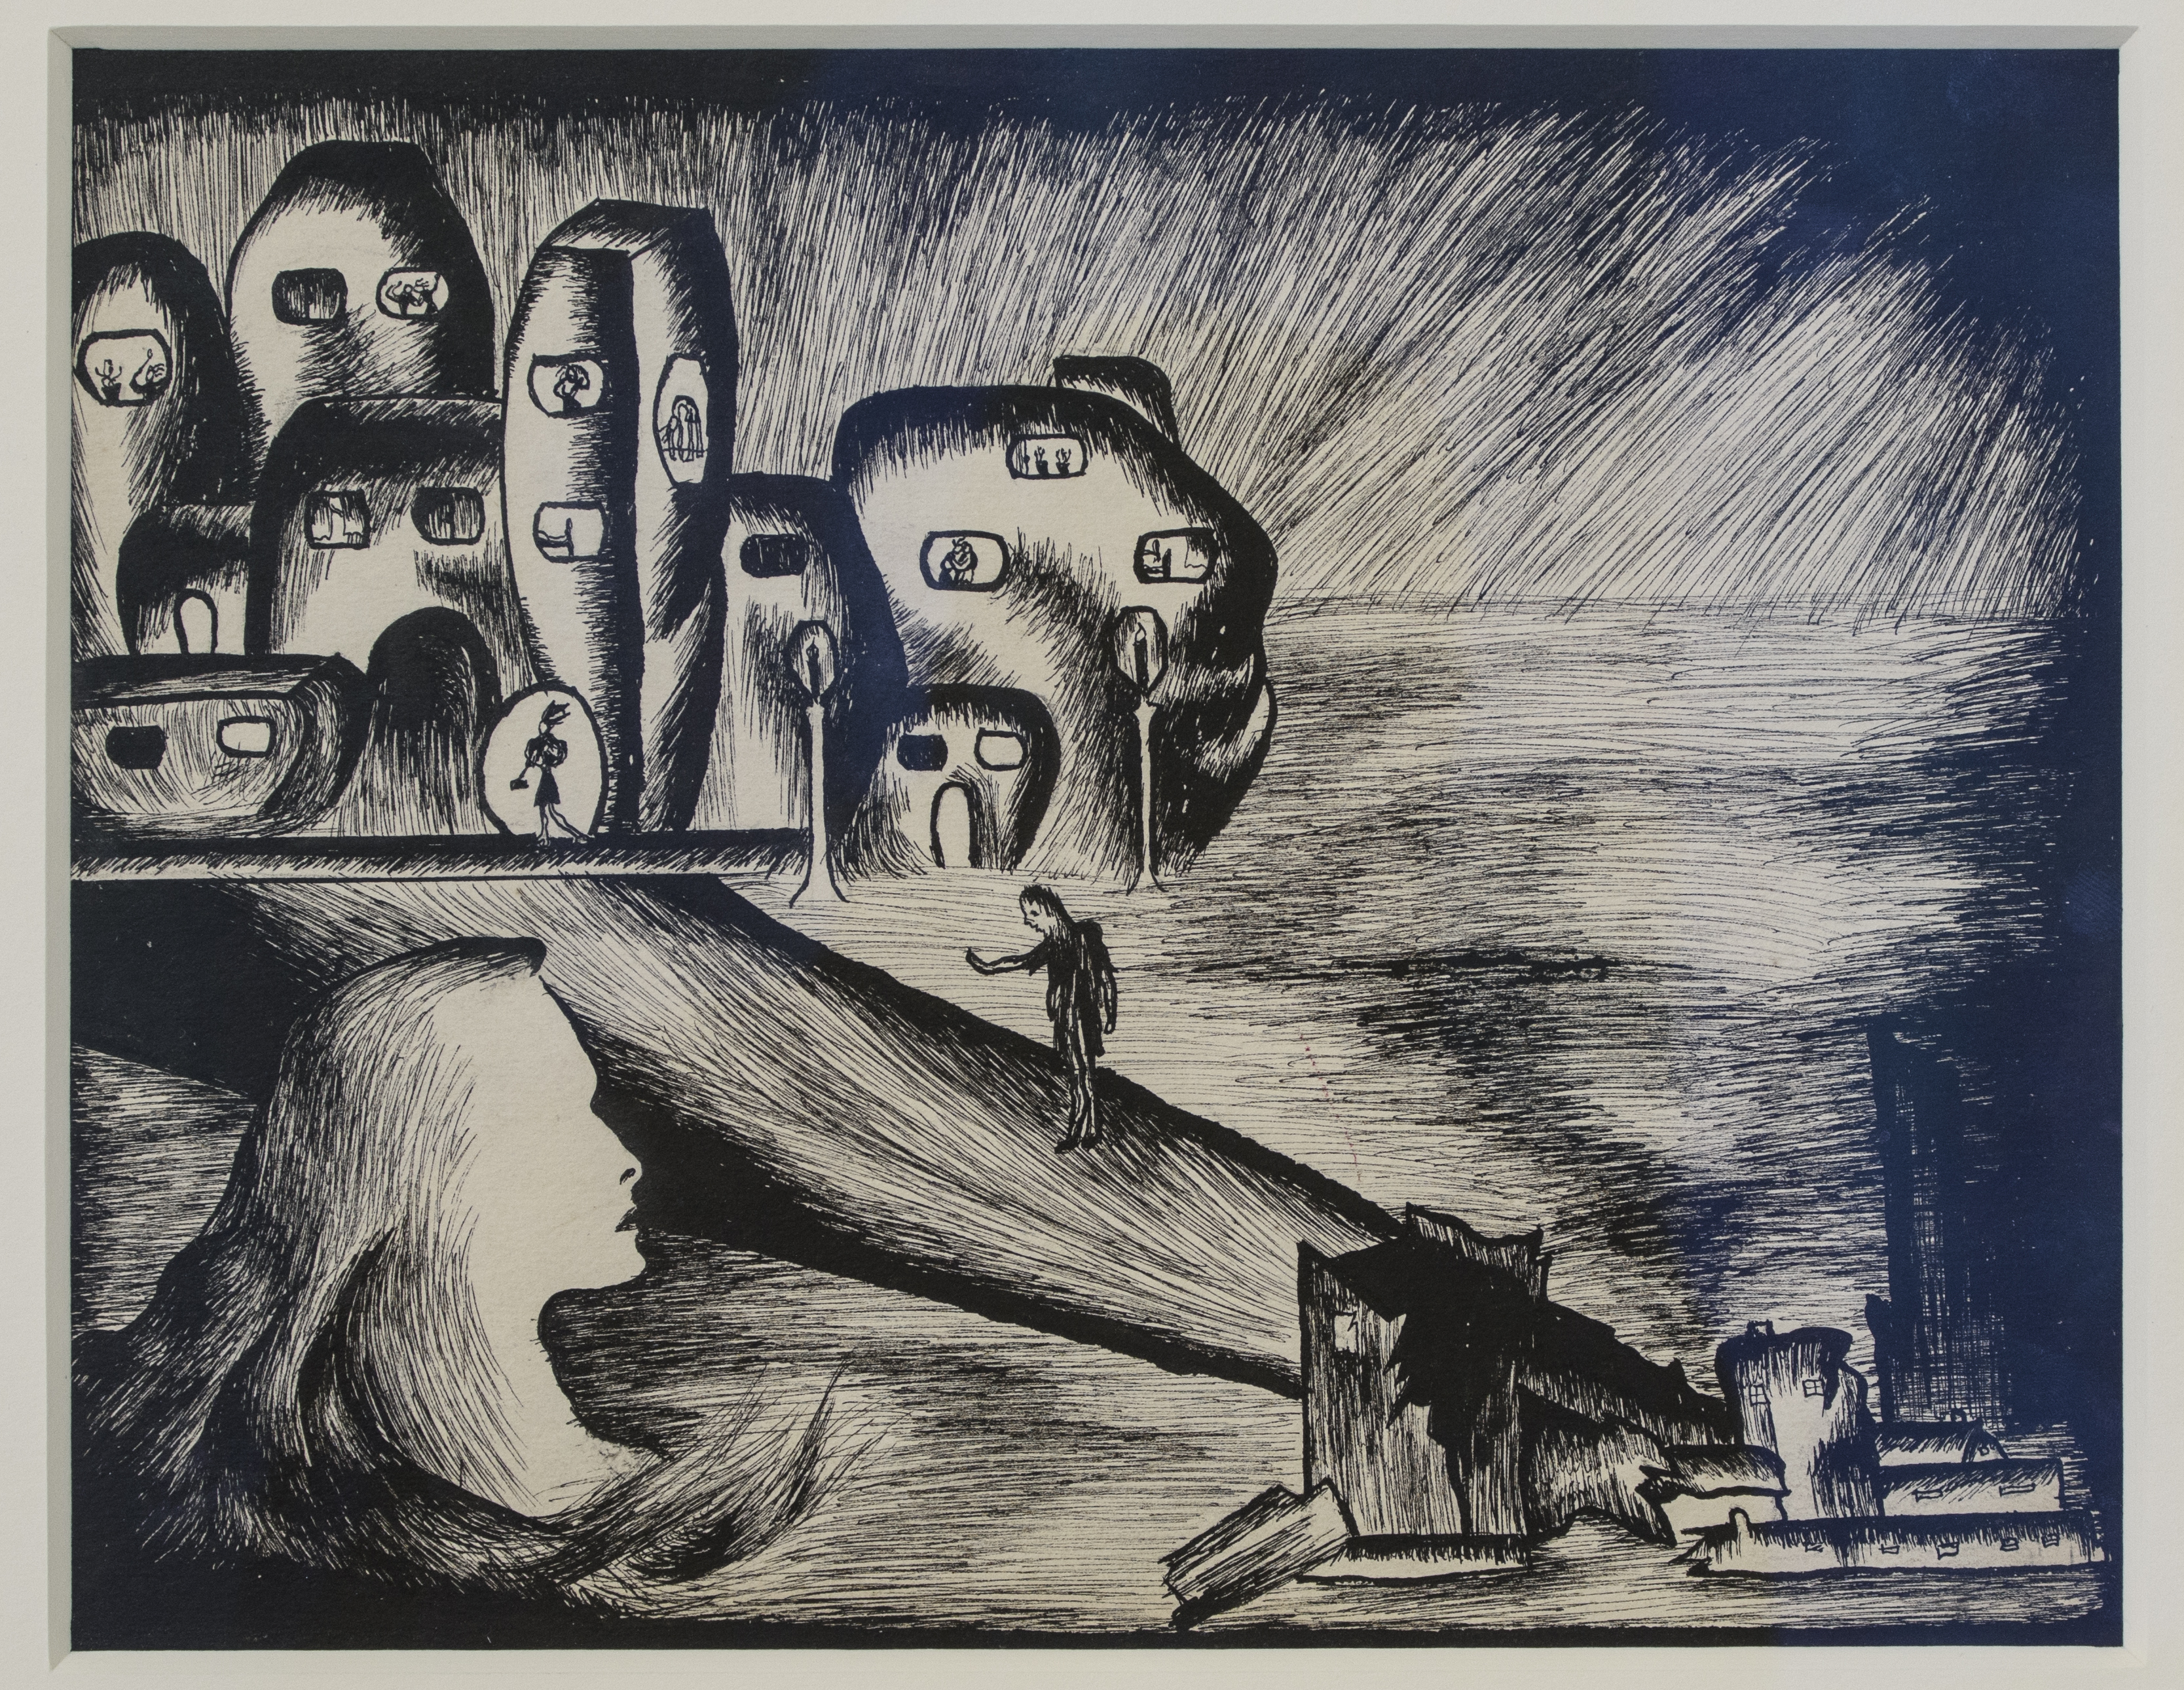 Inji Efflatoun, Contemplation, 1940. Ink on paper, 18.5 x 24 cm. Installation view. When Art Becomes Liberty: The Egyptian Surrealists, Palace of Arts, Cairo. Courtesy of Barjeel Art Foundation, Sharjah. Image courtesy of Sharjah Art Foundation.